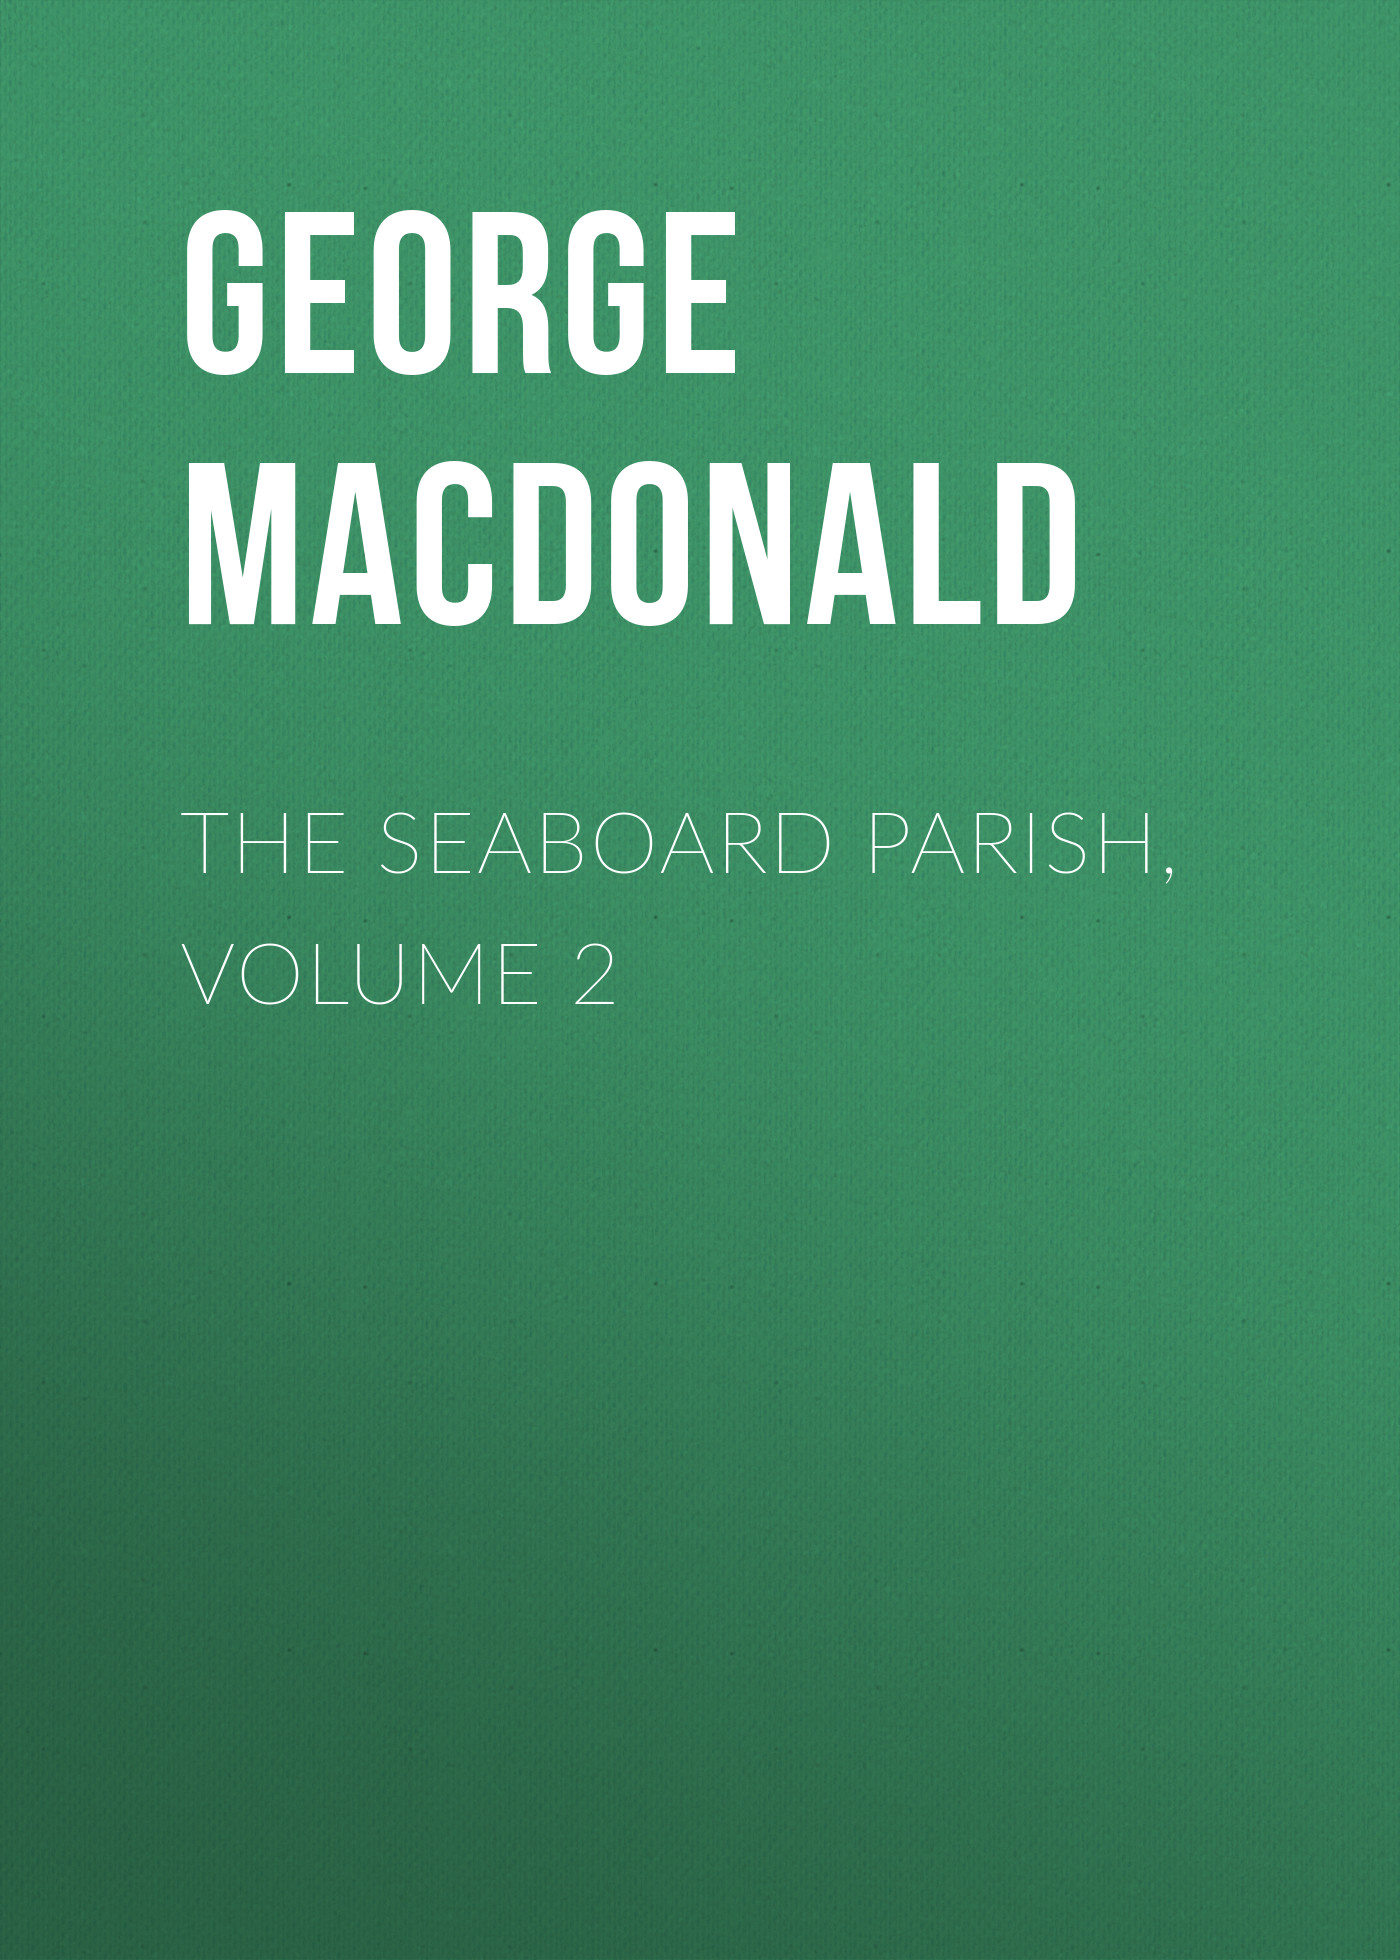 George MacDonald The Seaboard Parish, Volume 2